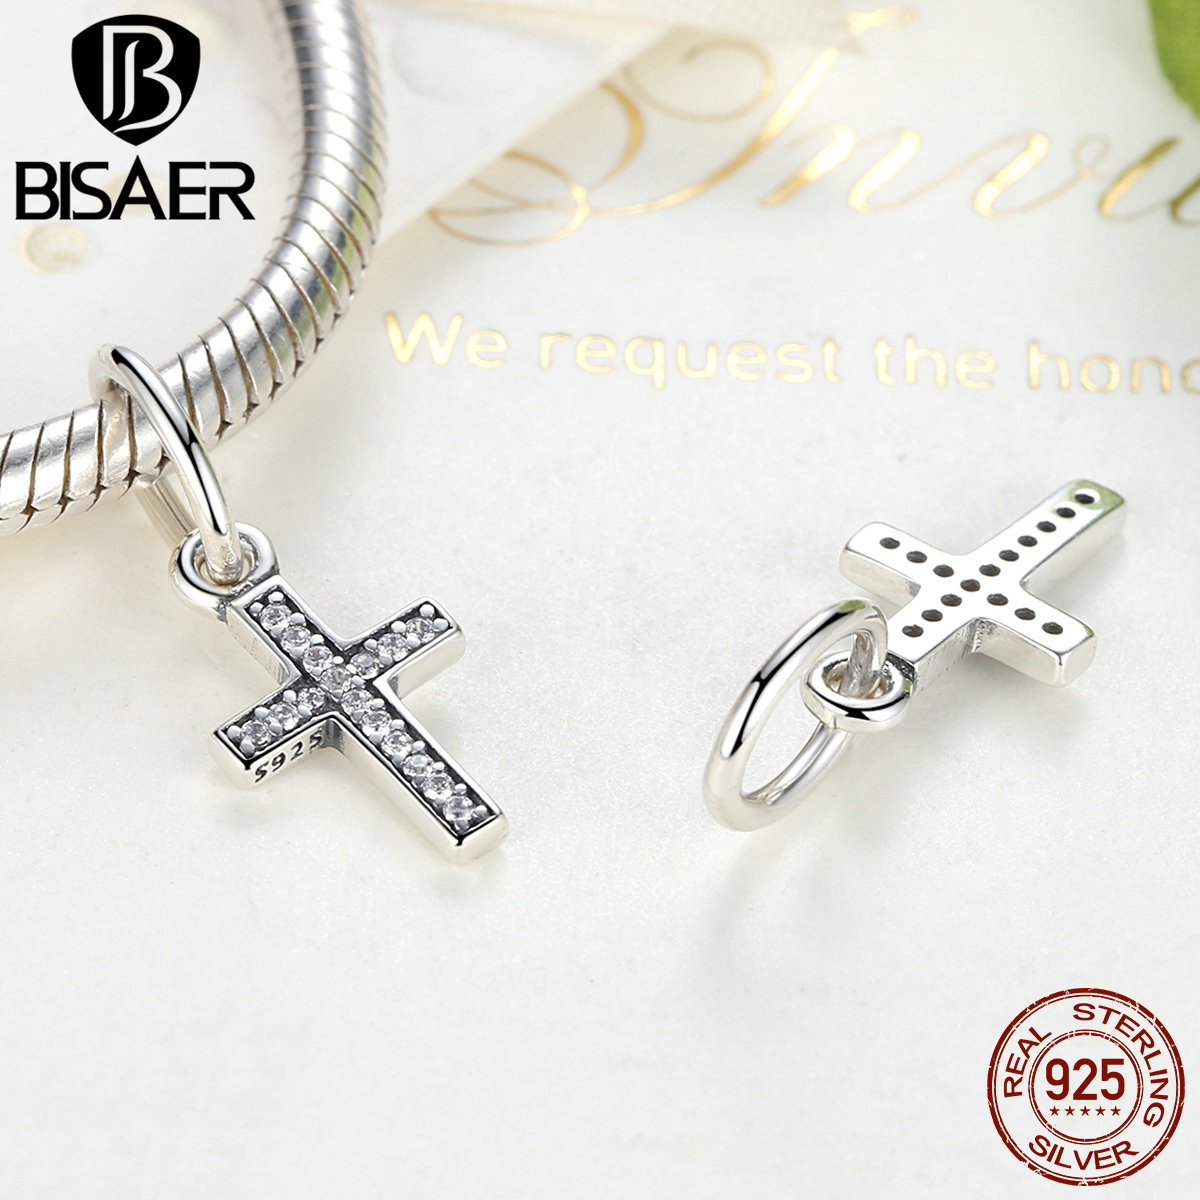 Bisaer real 925 sterling silver symbol of faith cross clear cz bisaer real 925 sterling silver symbol of faith cross clear cz beads charms fit original vrc bracelet fashion jewelry htc009 in charms from jewelry biocorpaavc Images